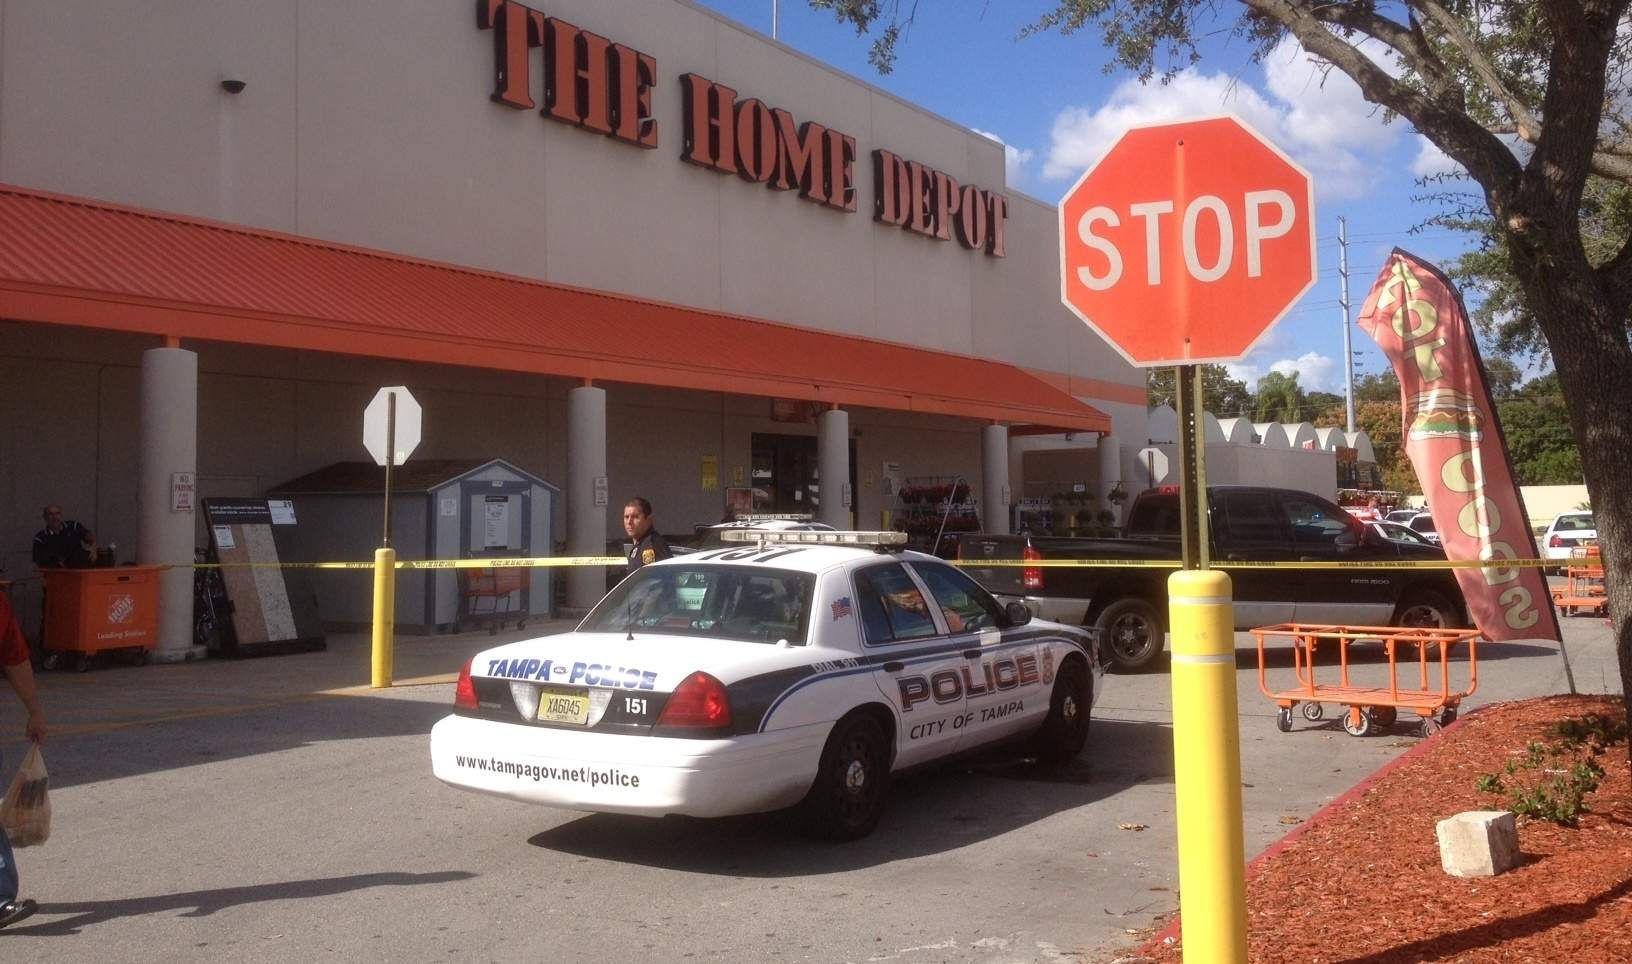 Parking Dispute Sparks Shooting At Home Depot Tampa Police Police Officer